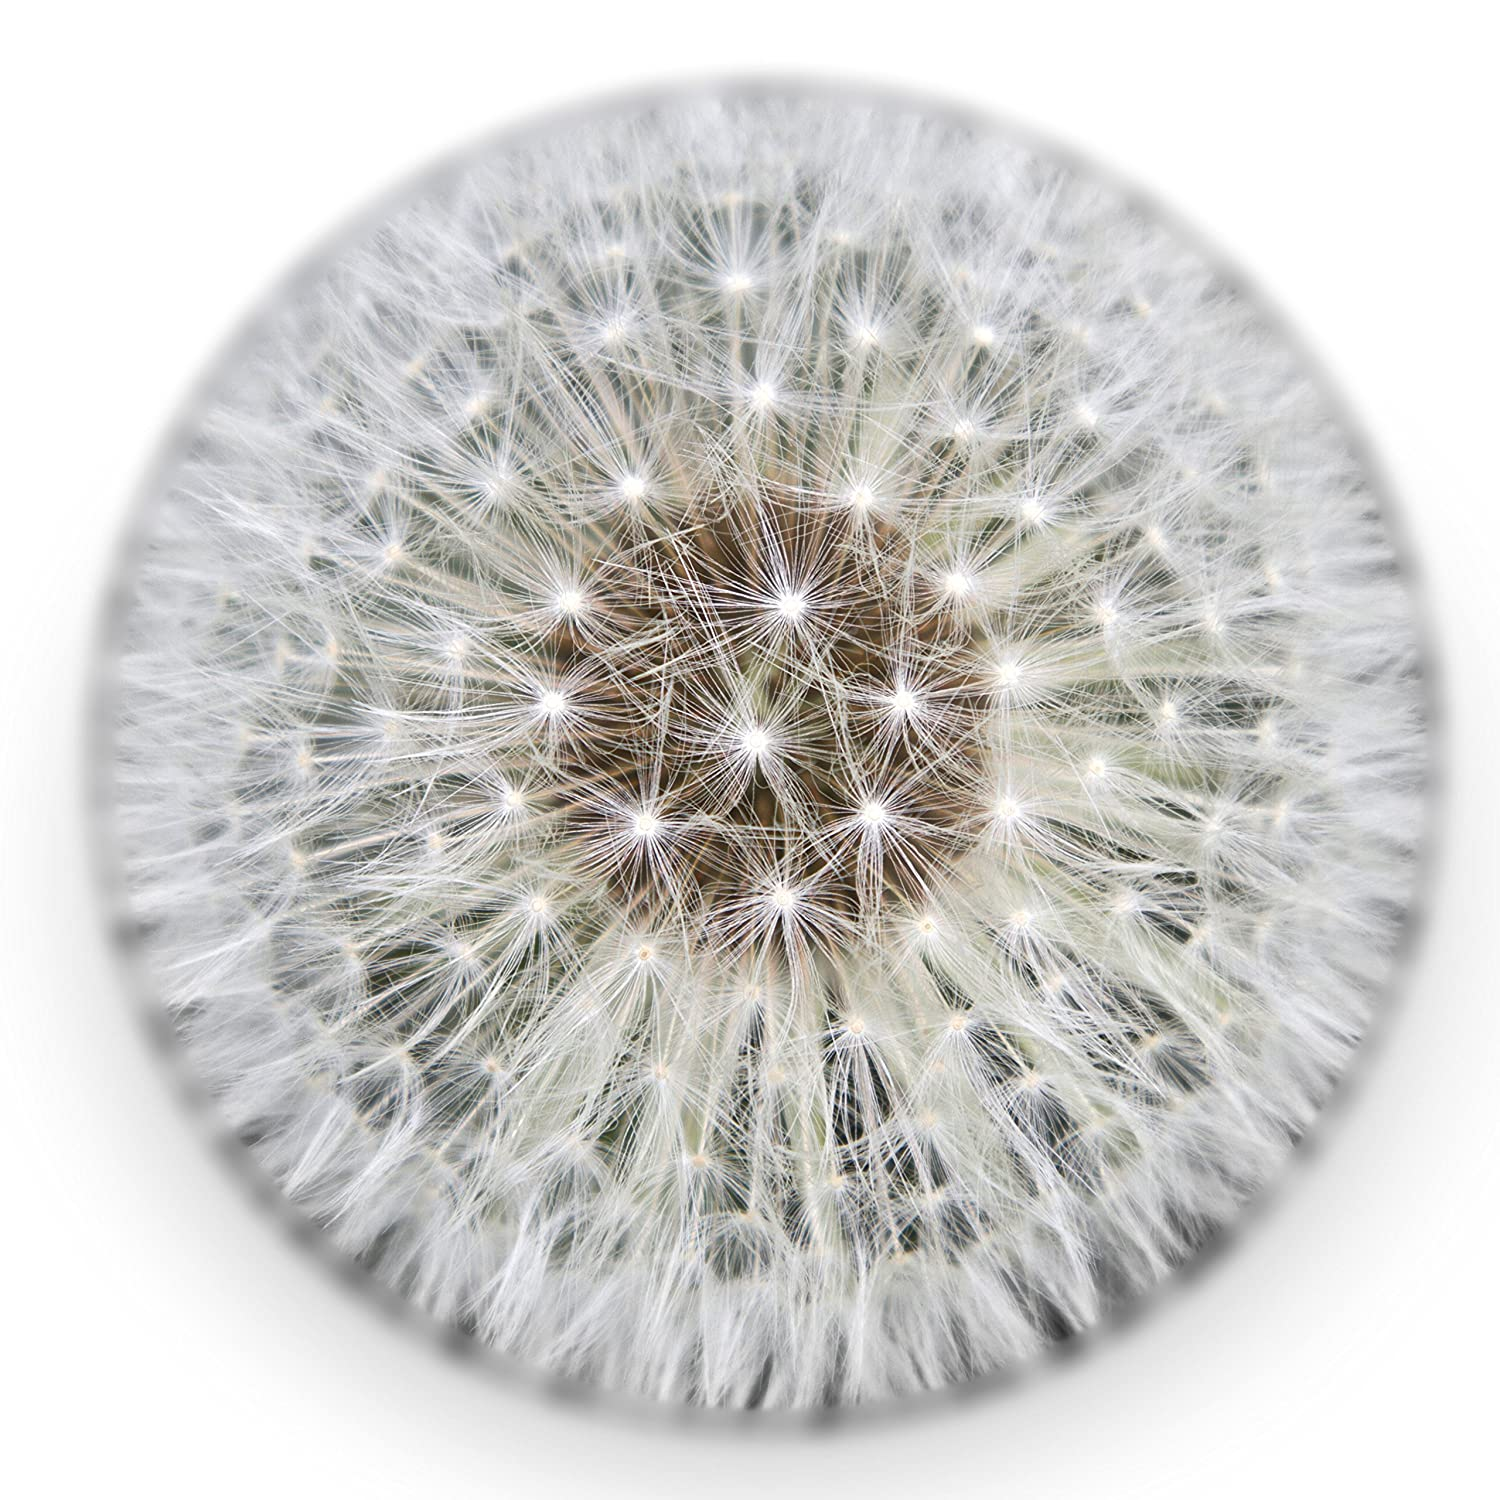 Amazoncom Dandelion Paperweight Made From A Real Dandelion Full